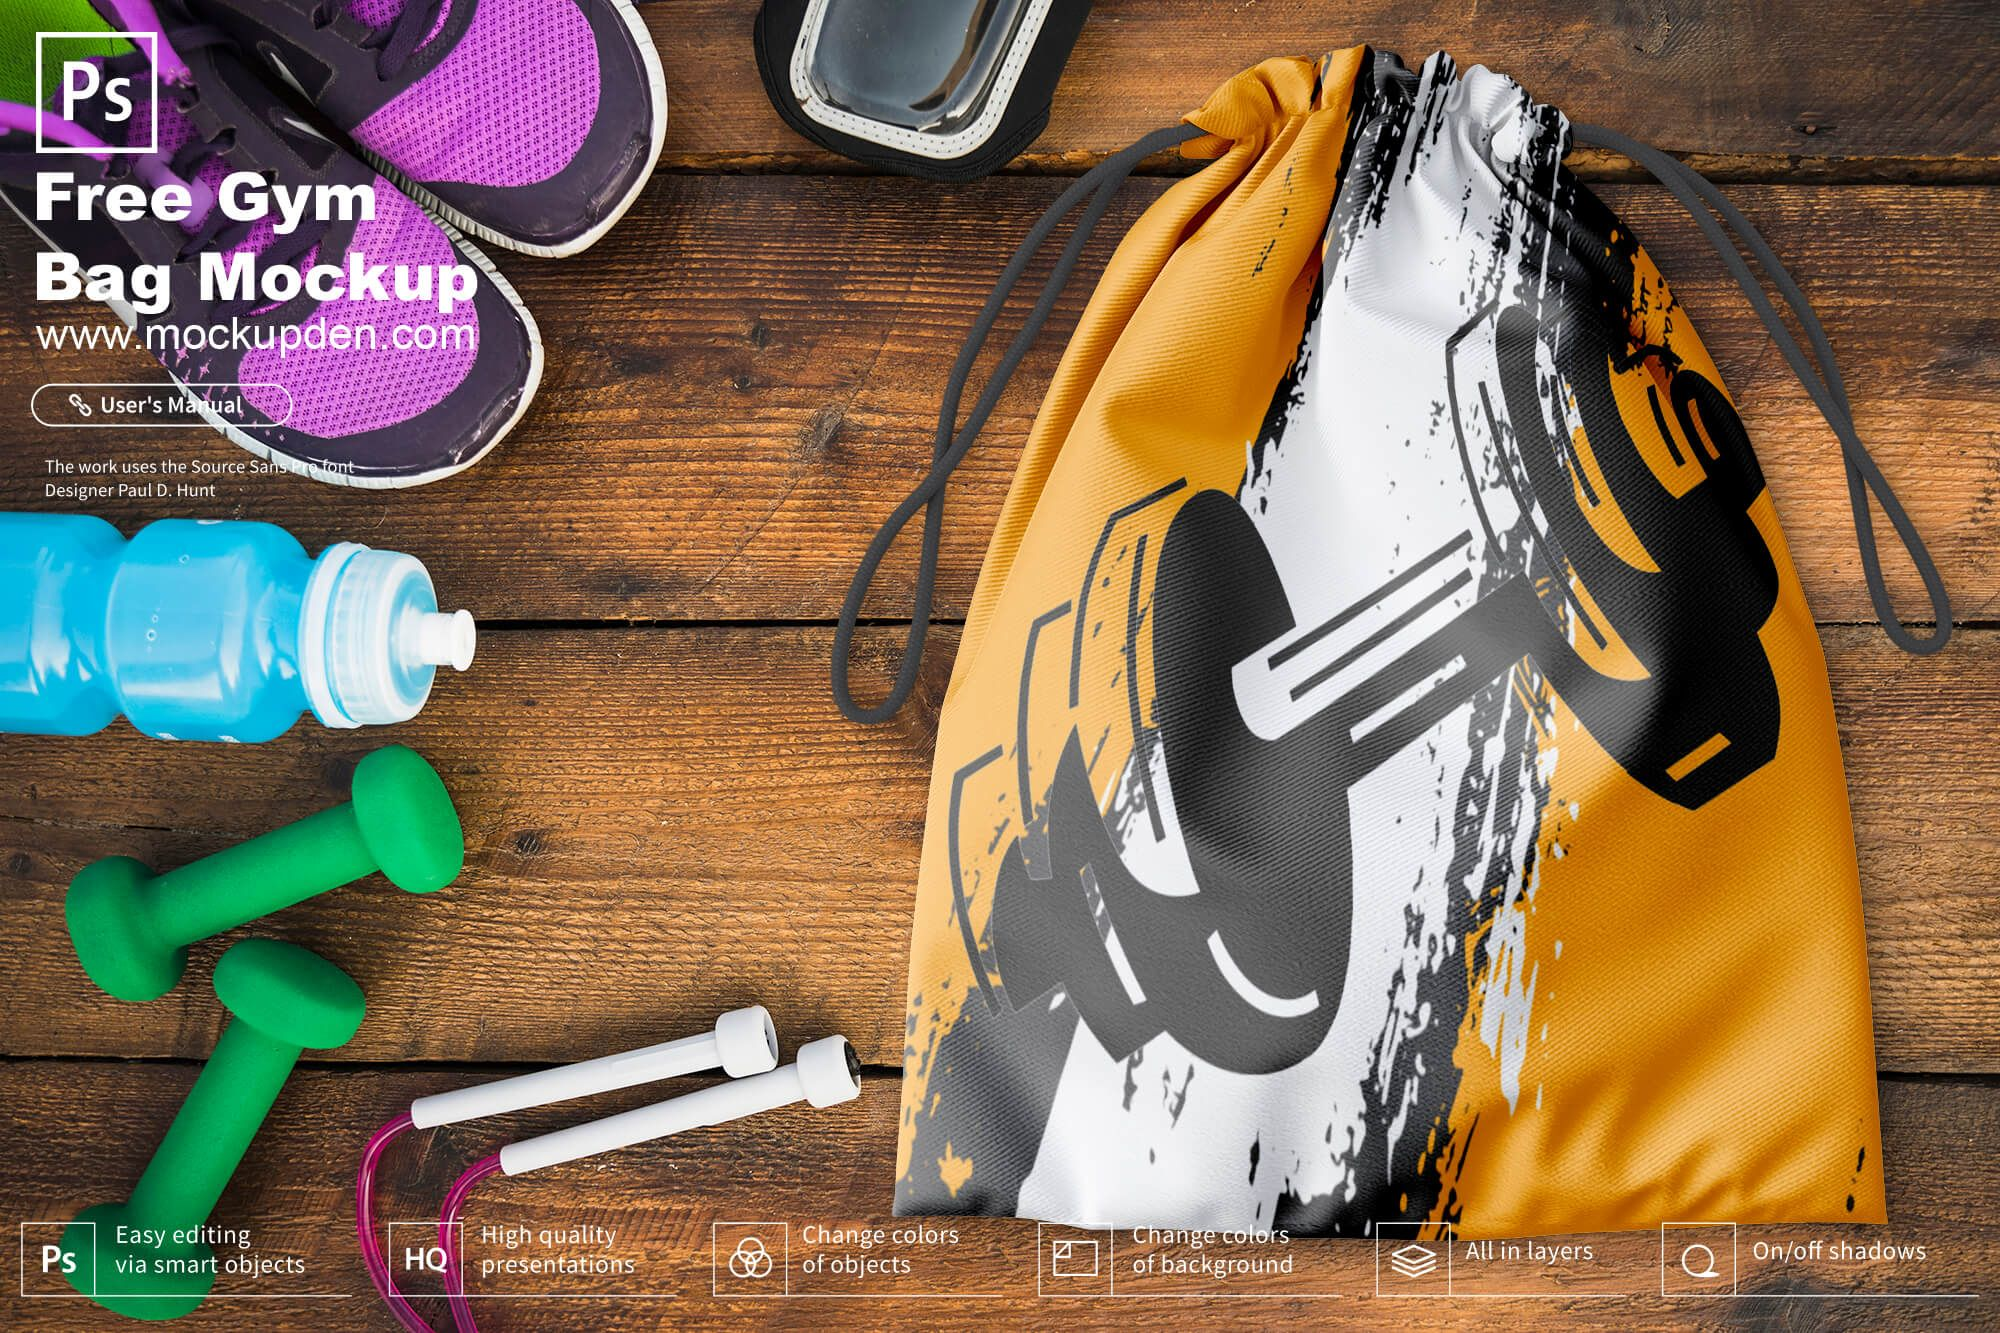 Download Free Gym Bag Mockup Psd Template In 2020 Bag Mockup Mockup Psd Templates Free Design